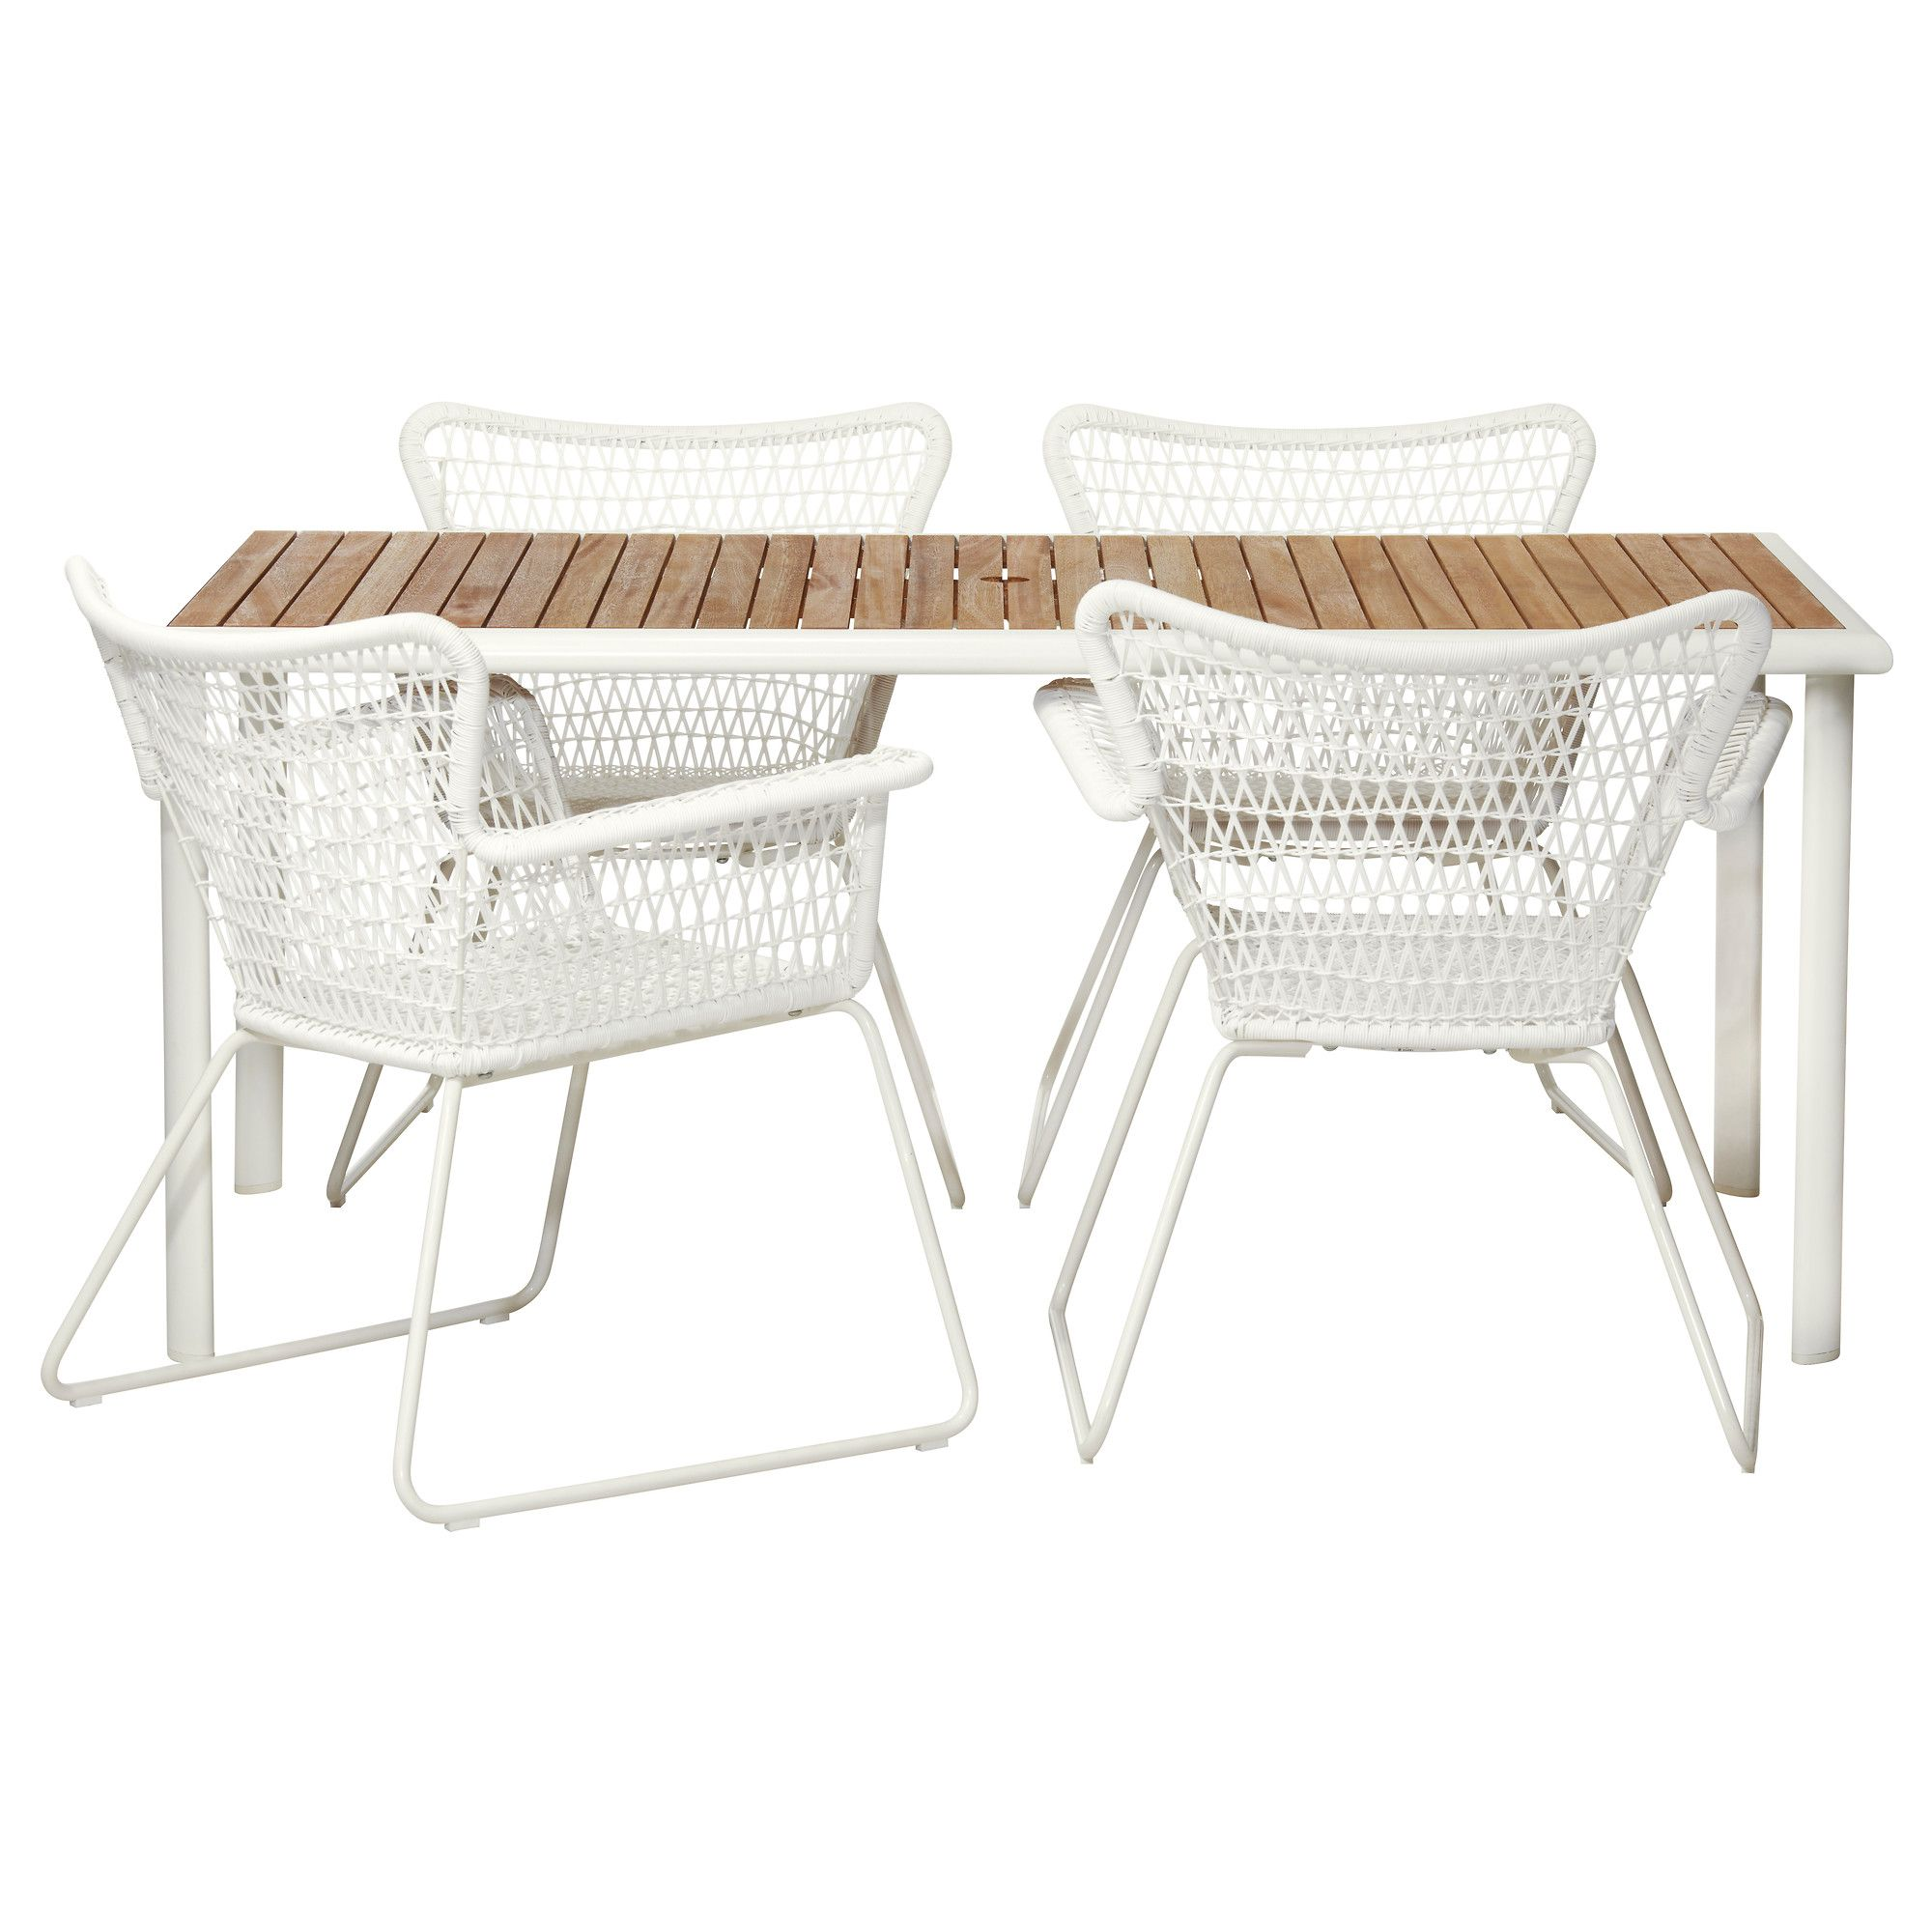 Set Giardino Rattan Ikea.Us Furniture And Home Furnishings Ikea Garden Furniture